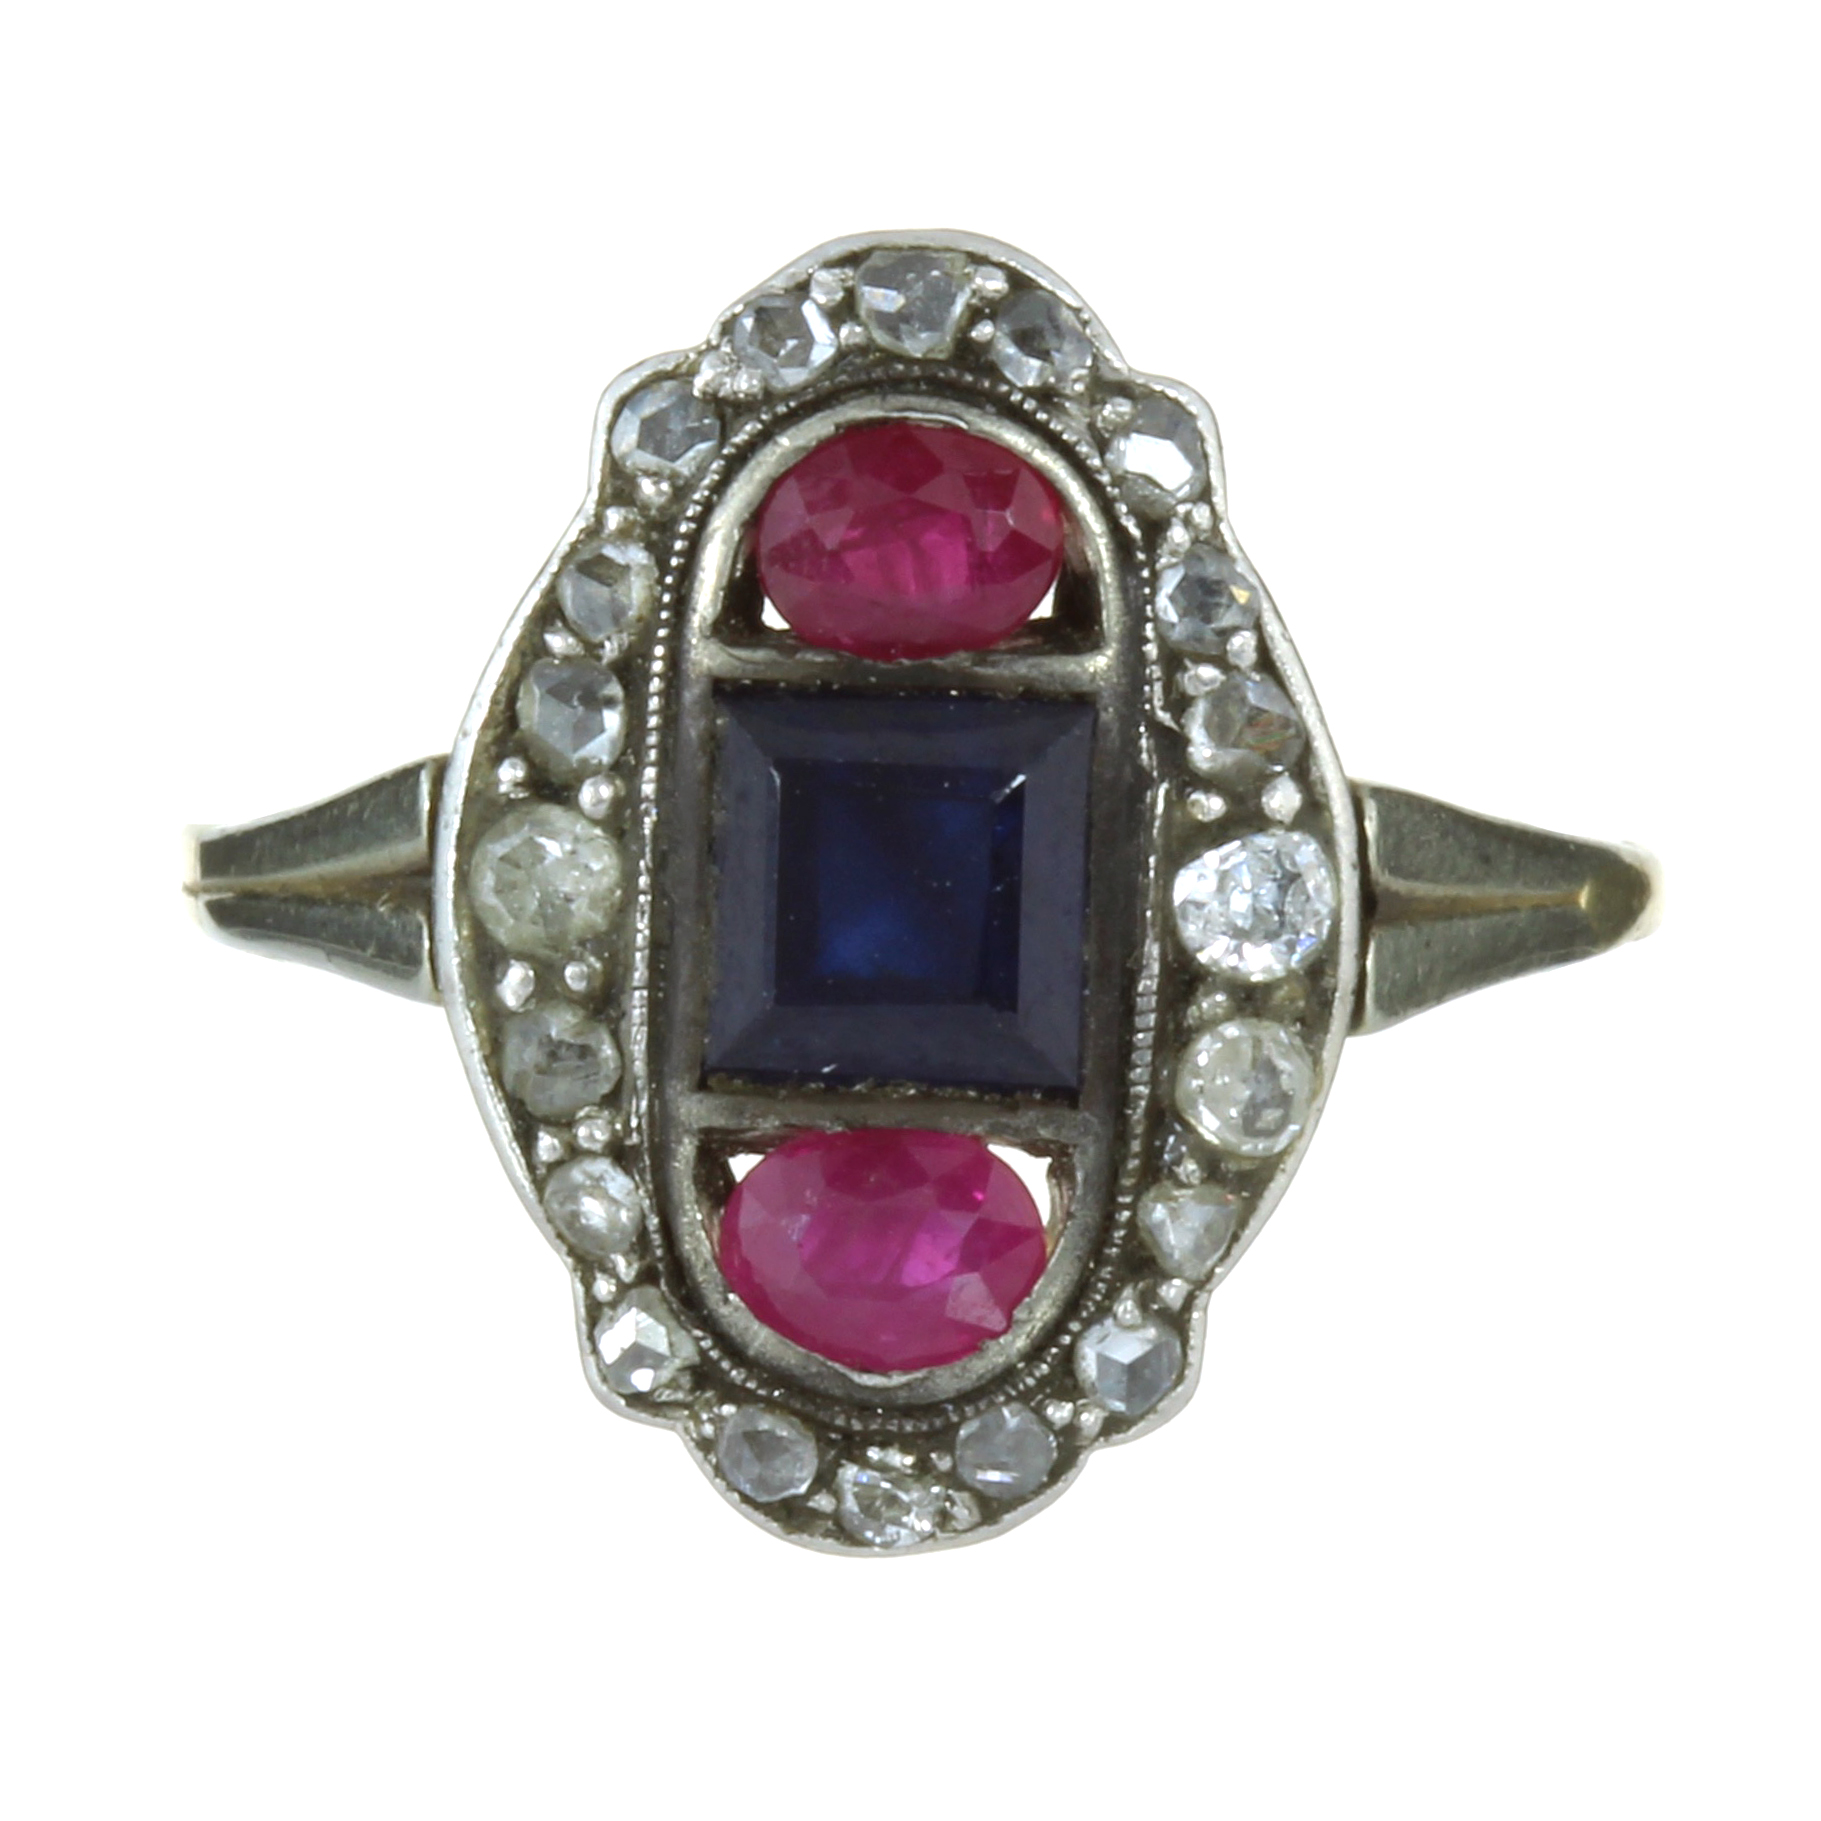 Los 33 - AN ANTIQUE ART DECO SAPPHIRE, RUBY AND DIAMOND RING in high carat yellow gold set with a step cut